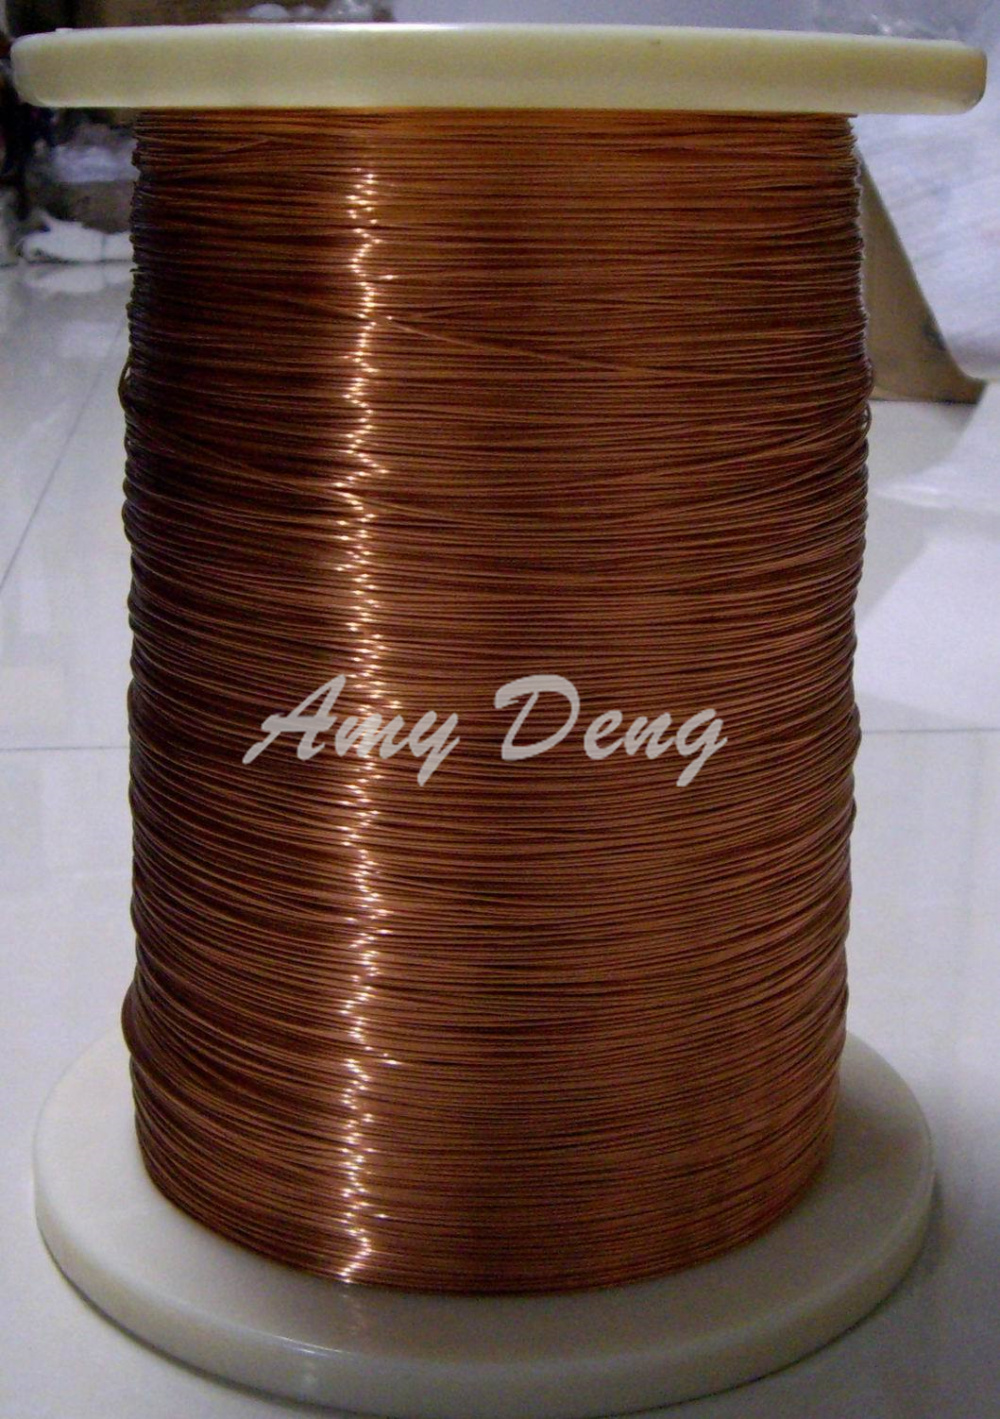 50 Meters/lot  1.2 Mm Polyurethane Enamel Covered Wire 2UEW QA-155 Copper Wire